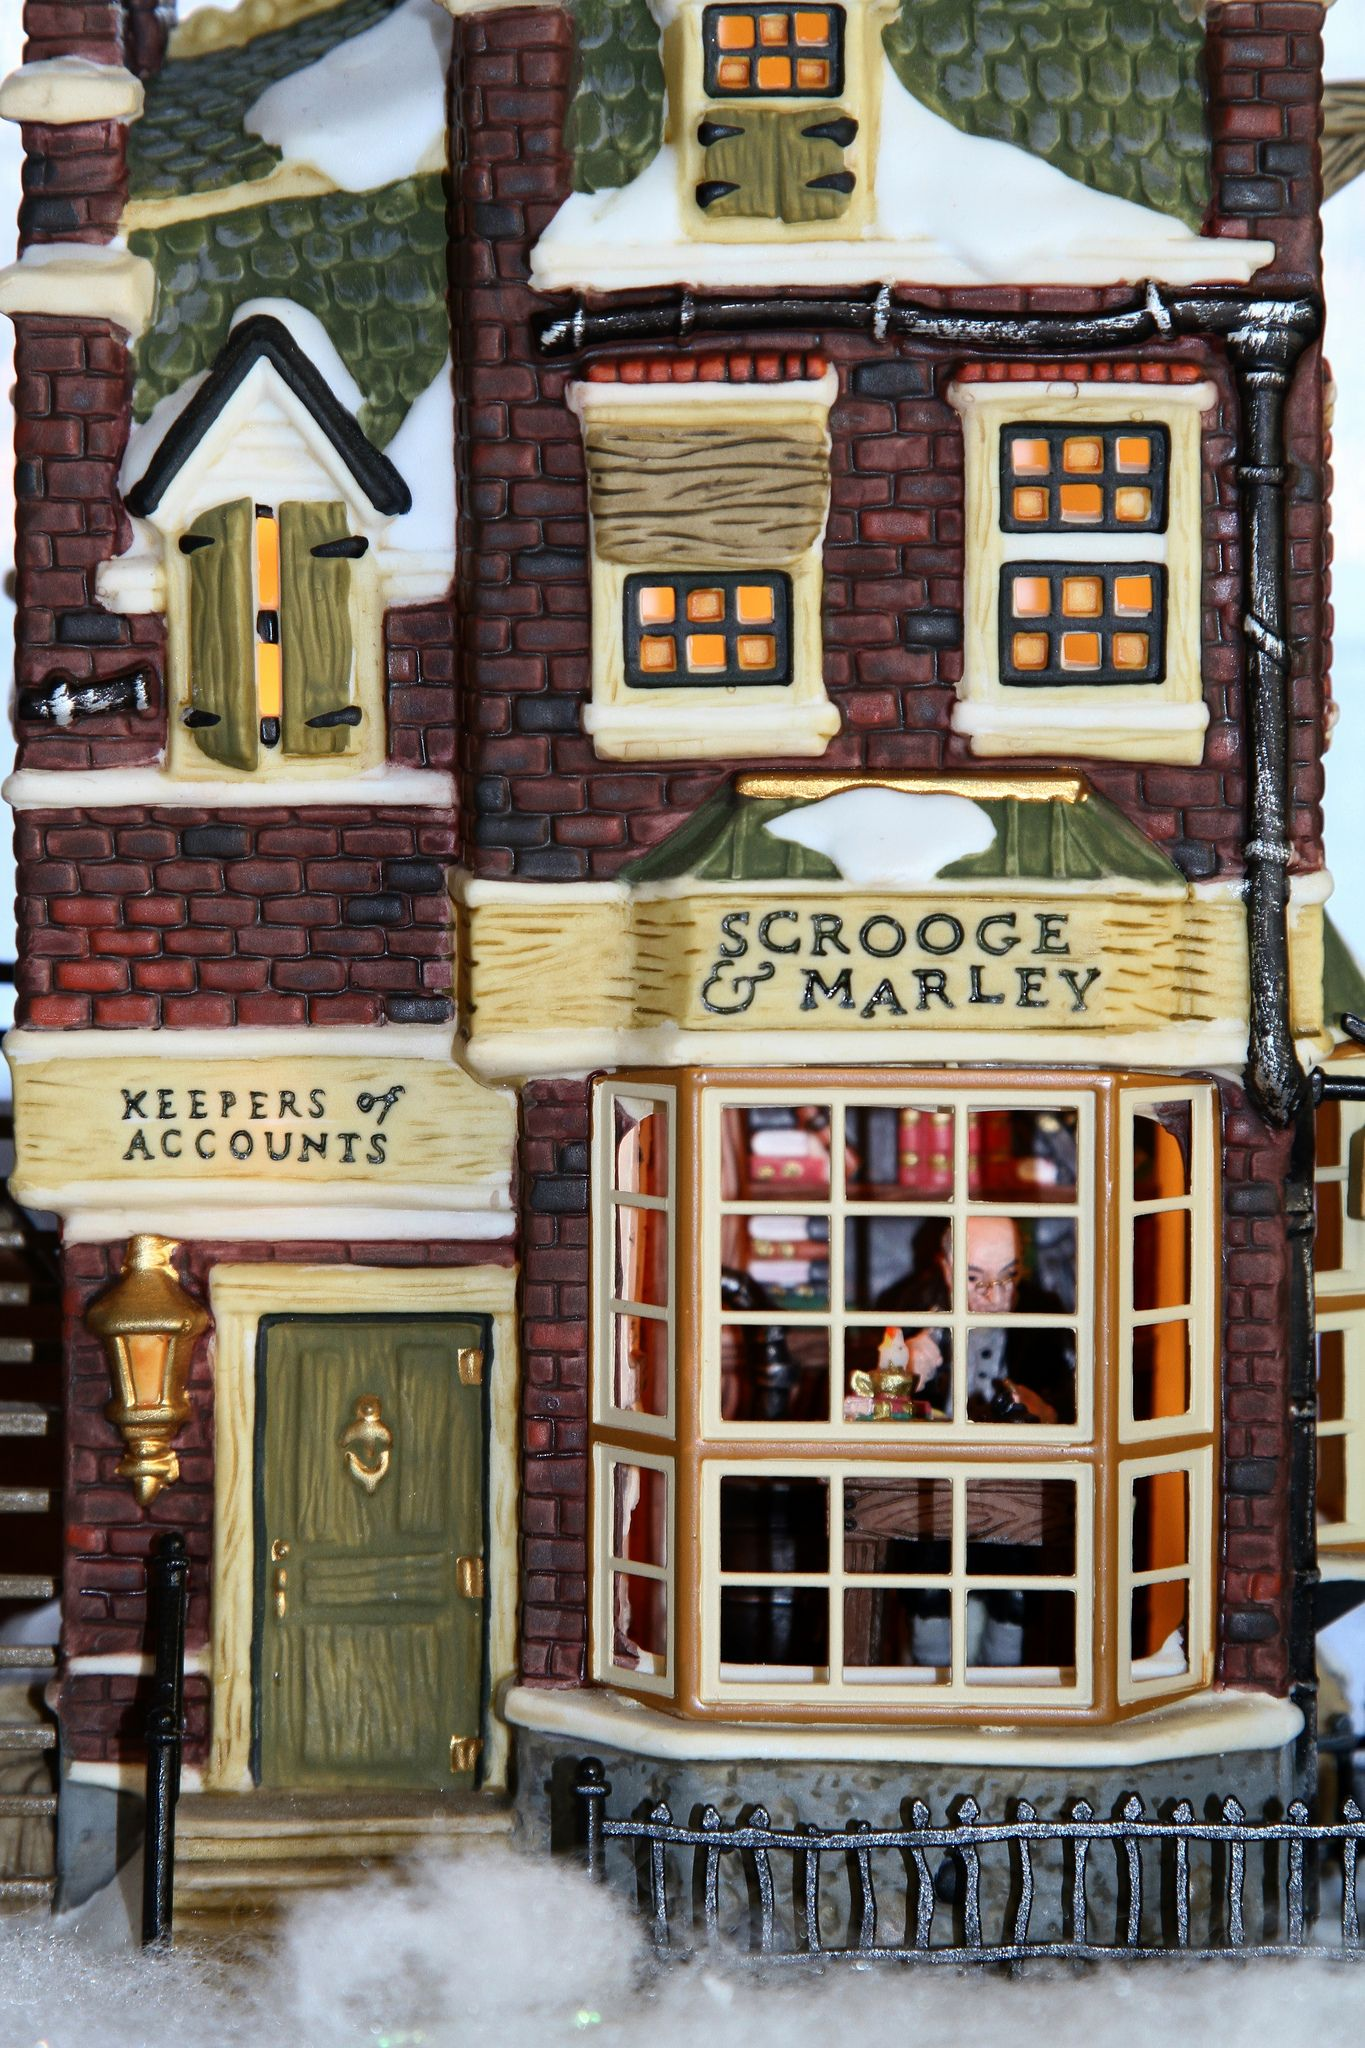 Department 56 Scrooge and Marley Counting House - Closeup of Ebenezer Scrooge